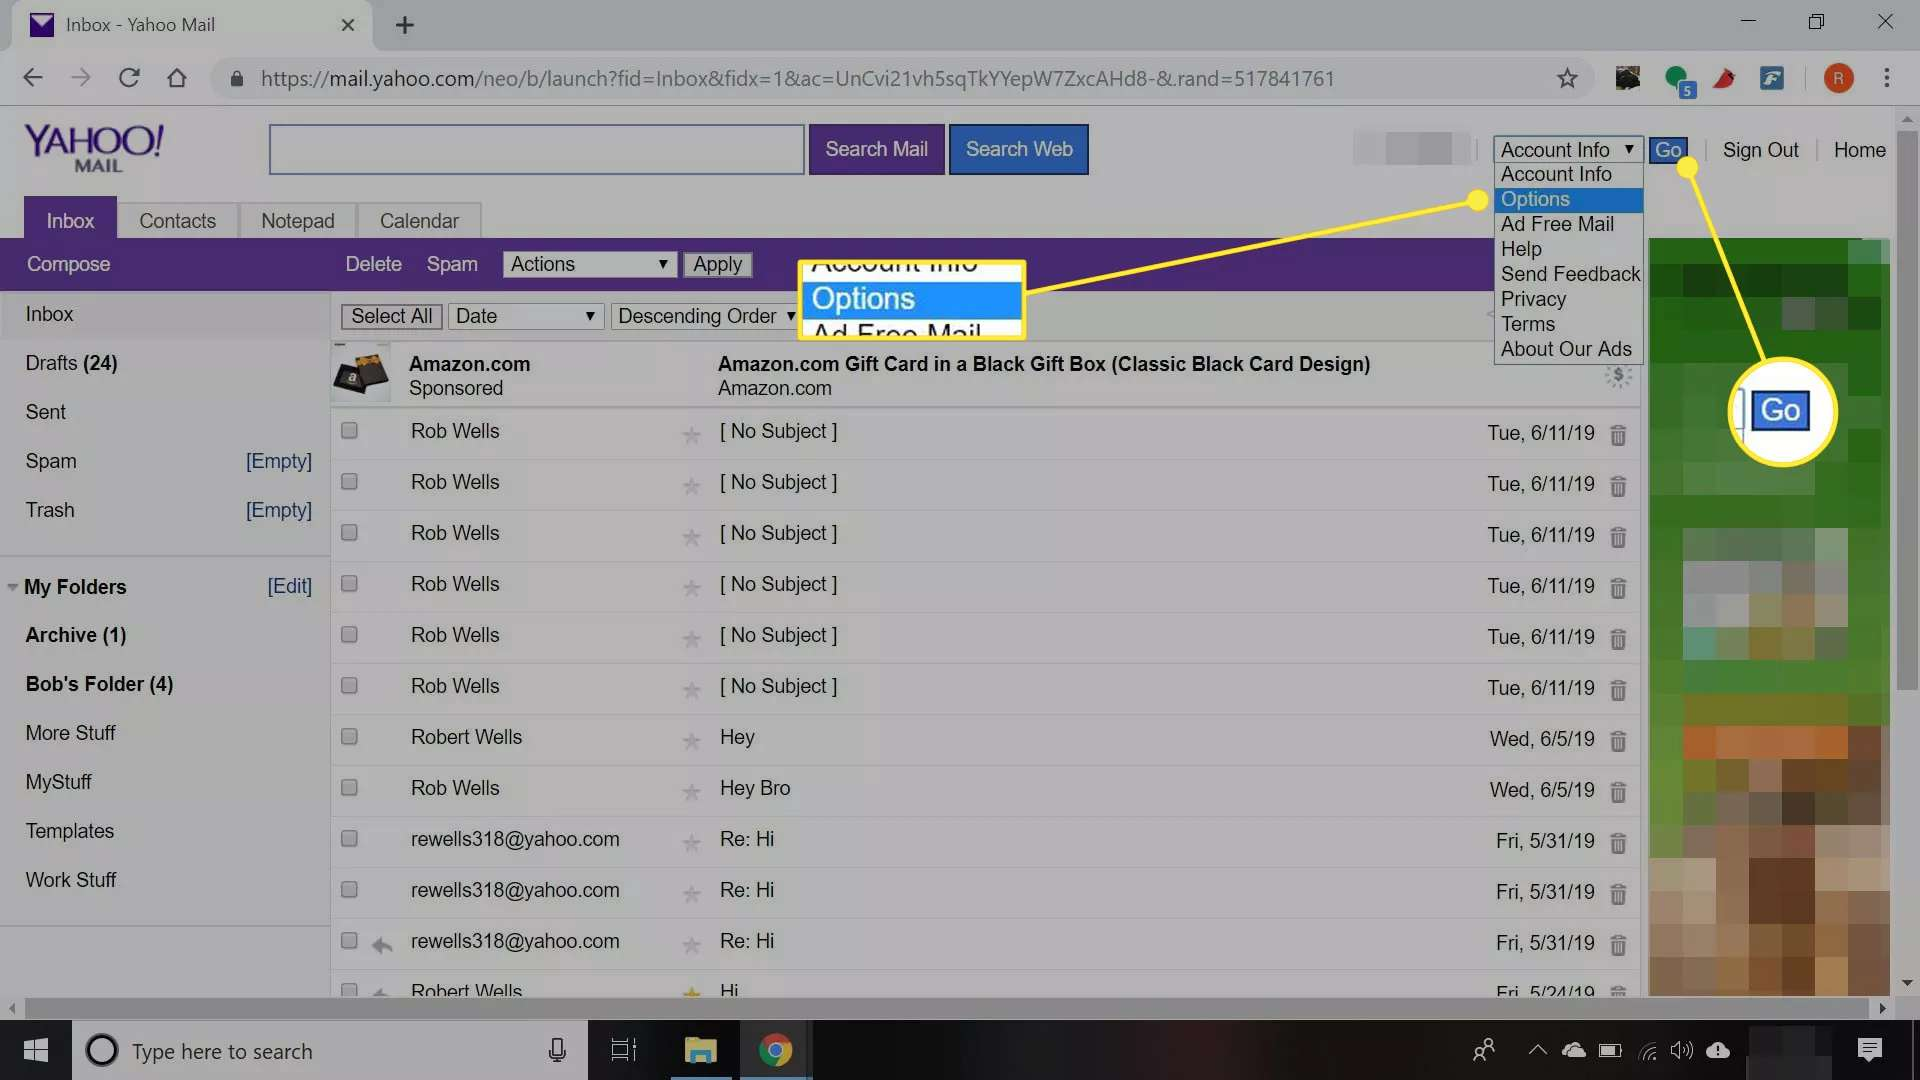 A Yahoo Mail inbox with 'Options' and 'Go' highlighted